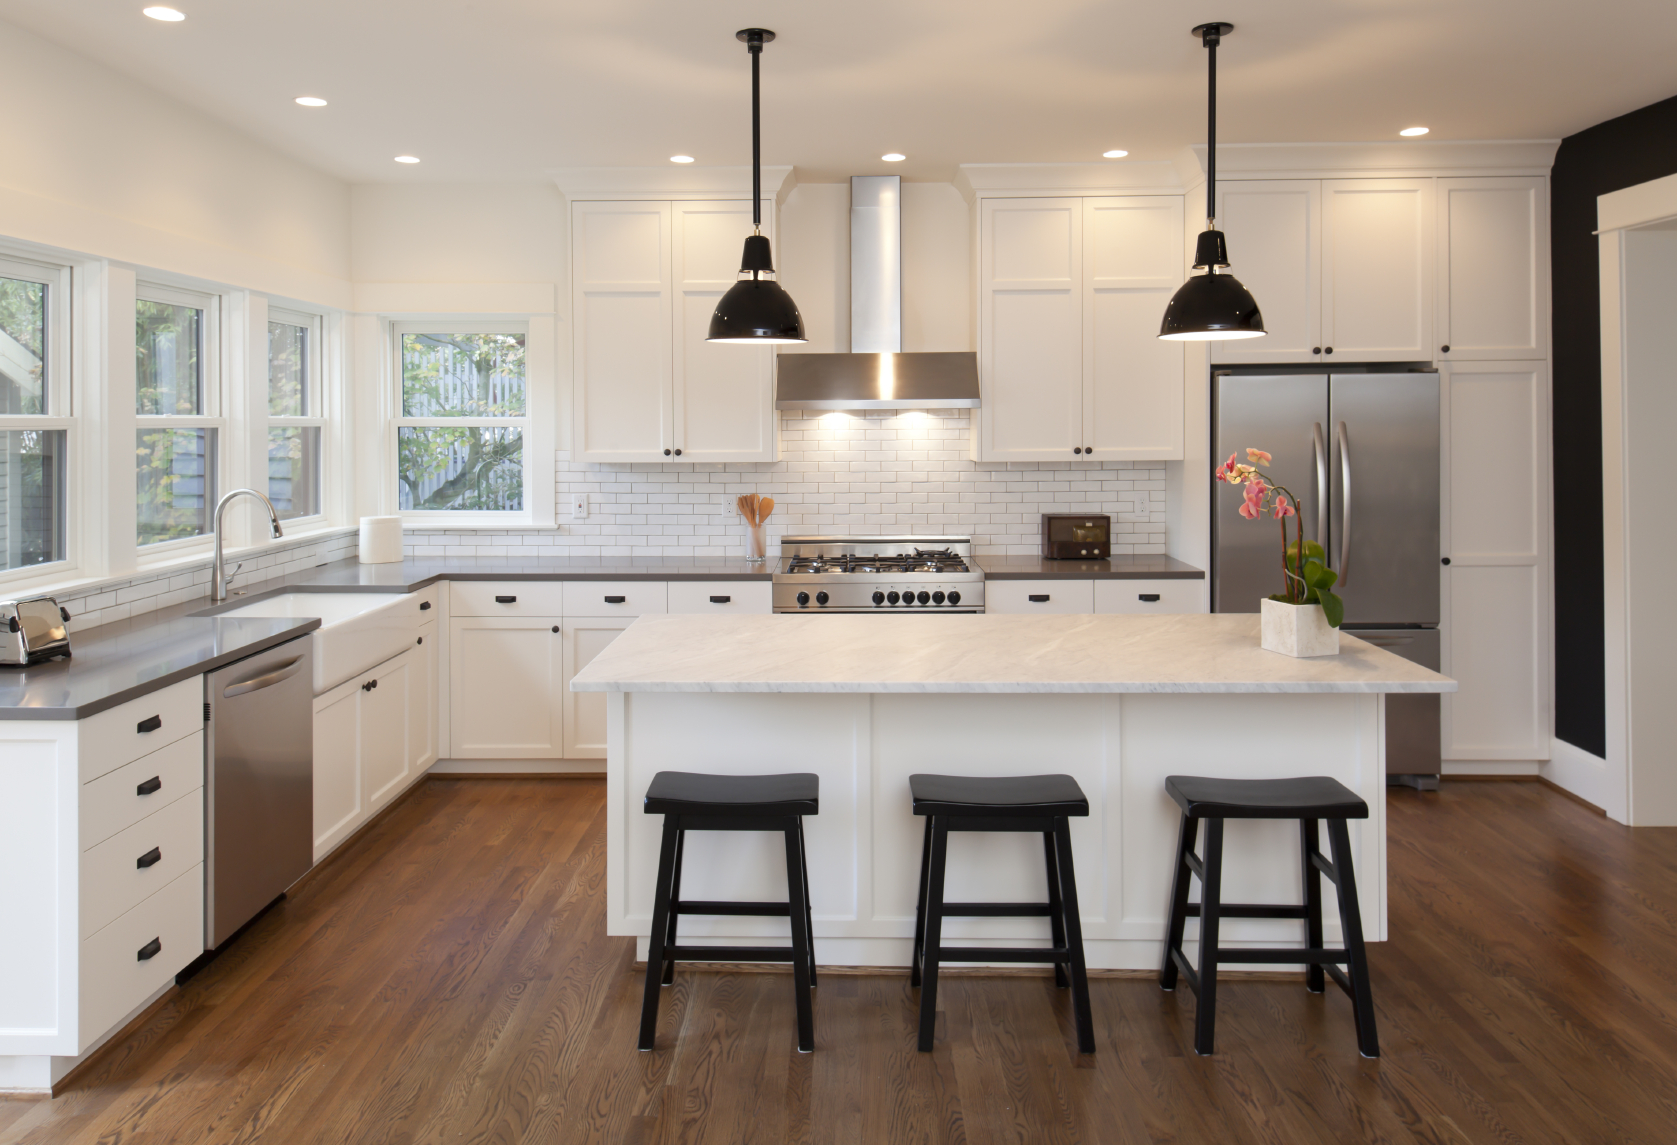 The dos and don 39 ts of kitchen remodeling huffpost for How to remodel a kitchen